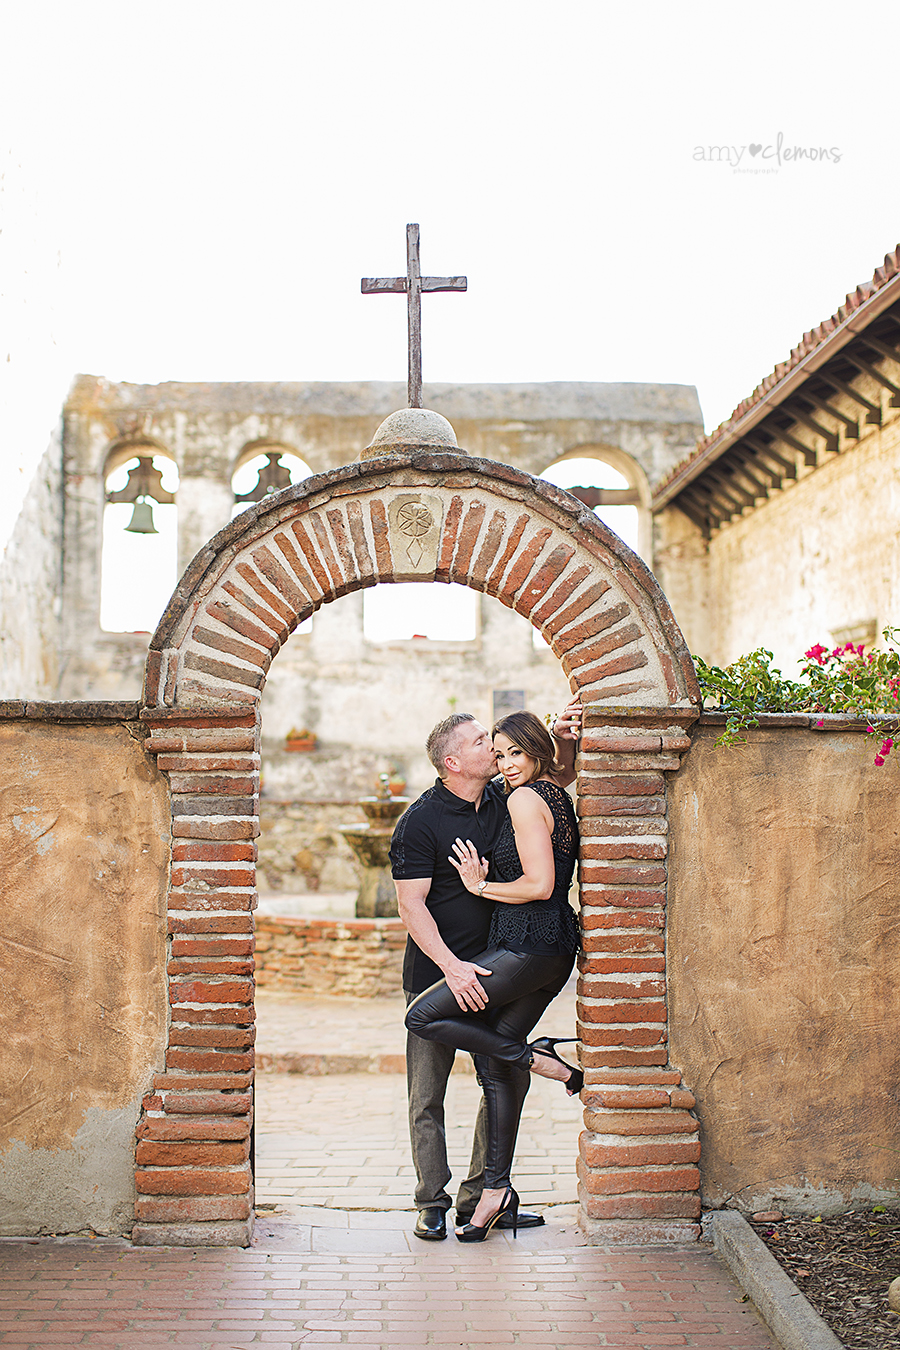 San Juan Capistrano Mission, Amy Clemons Photography (4)